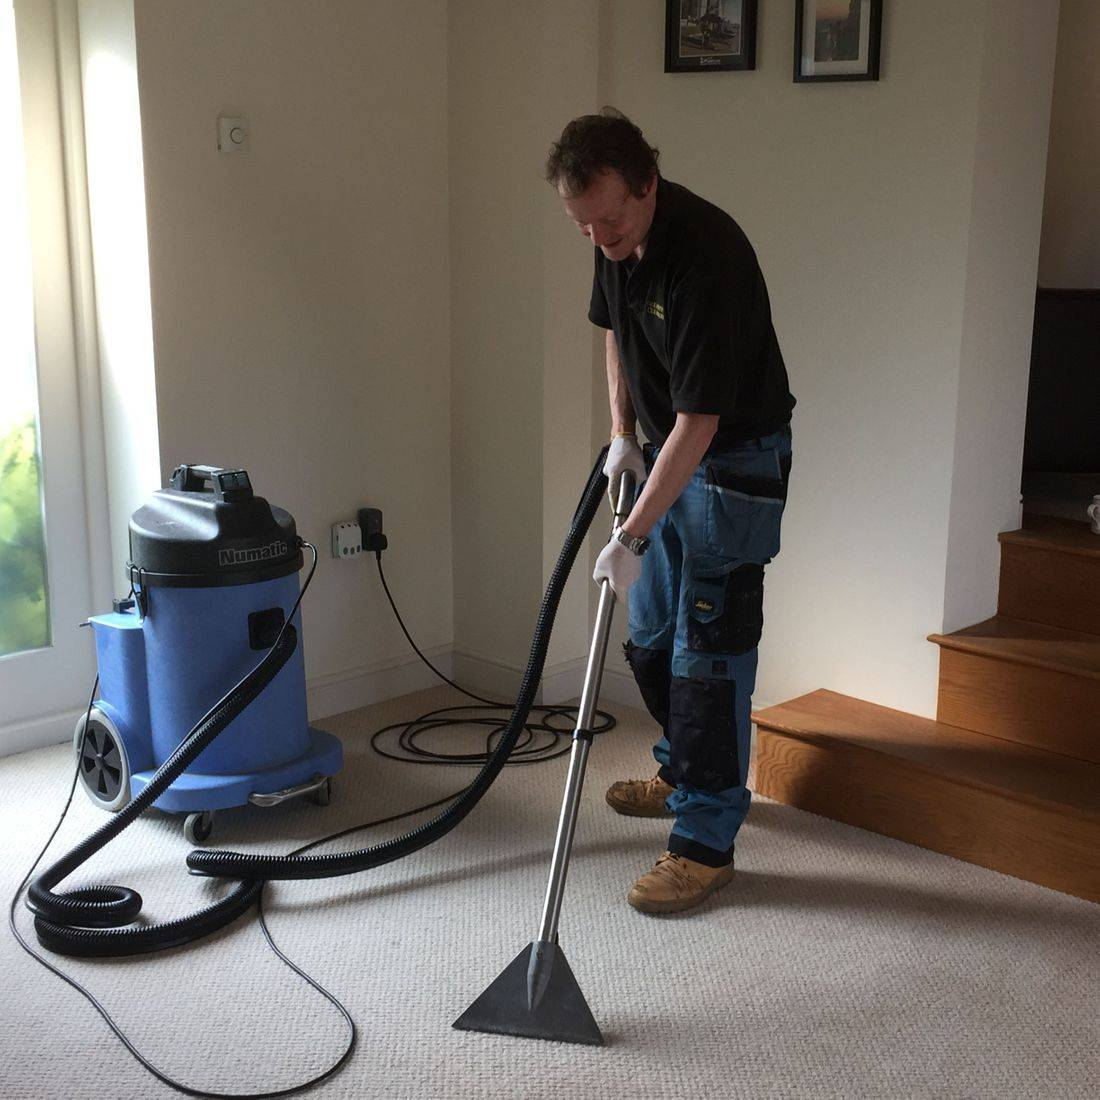 Rug Cleaning Business for Sale. Carpet Cleaning Business Opportunity